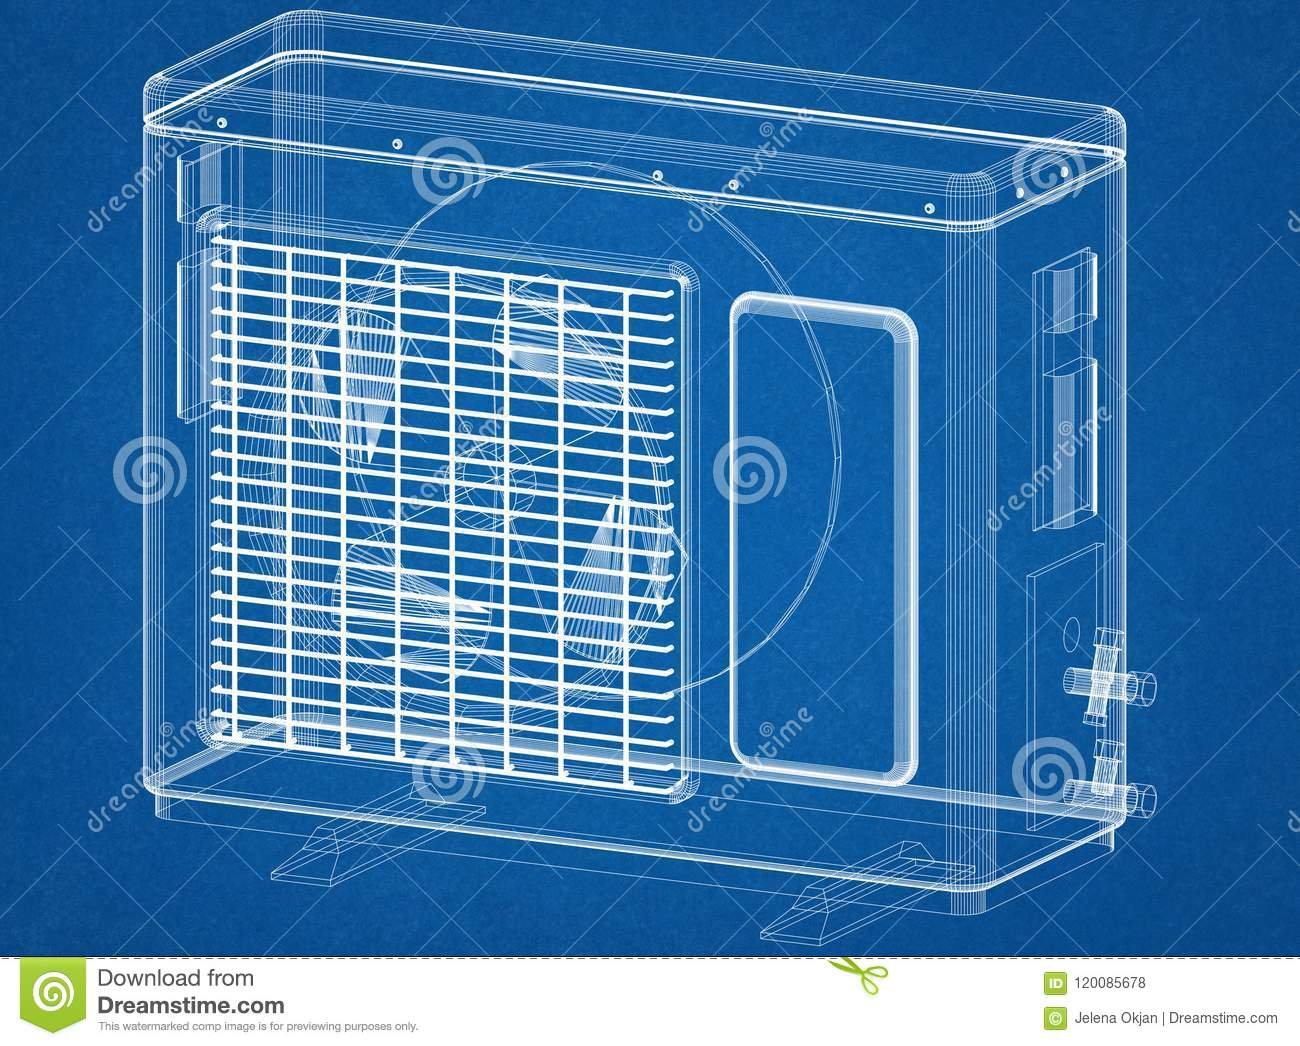 Air Conditioner Blueprint Tempstar Ac Unit Wiring Diagram Free Download Architect Stock Illustration 1300x1046 Image